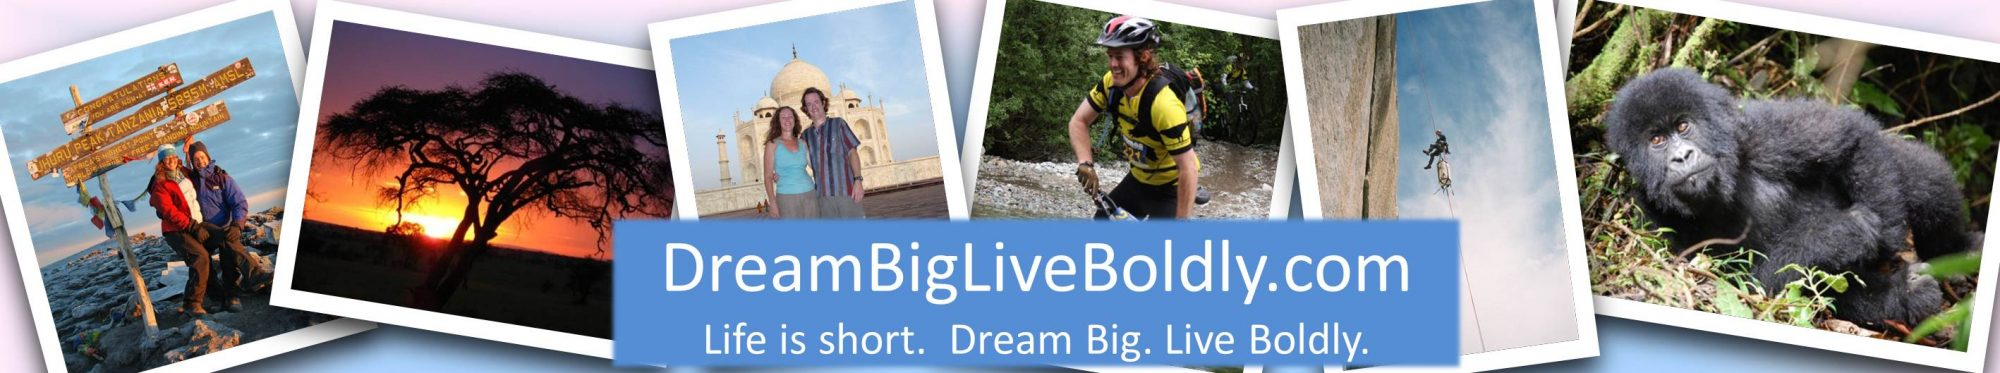 Dream Big Live Boldly